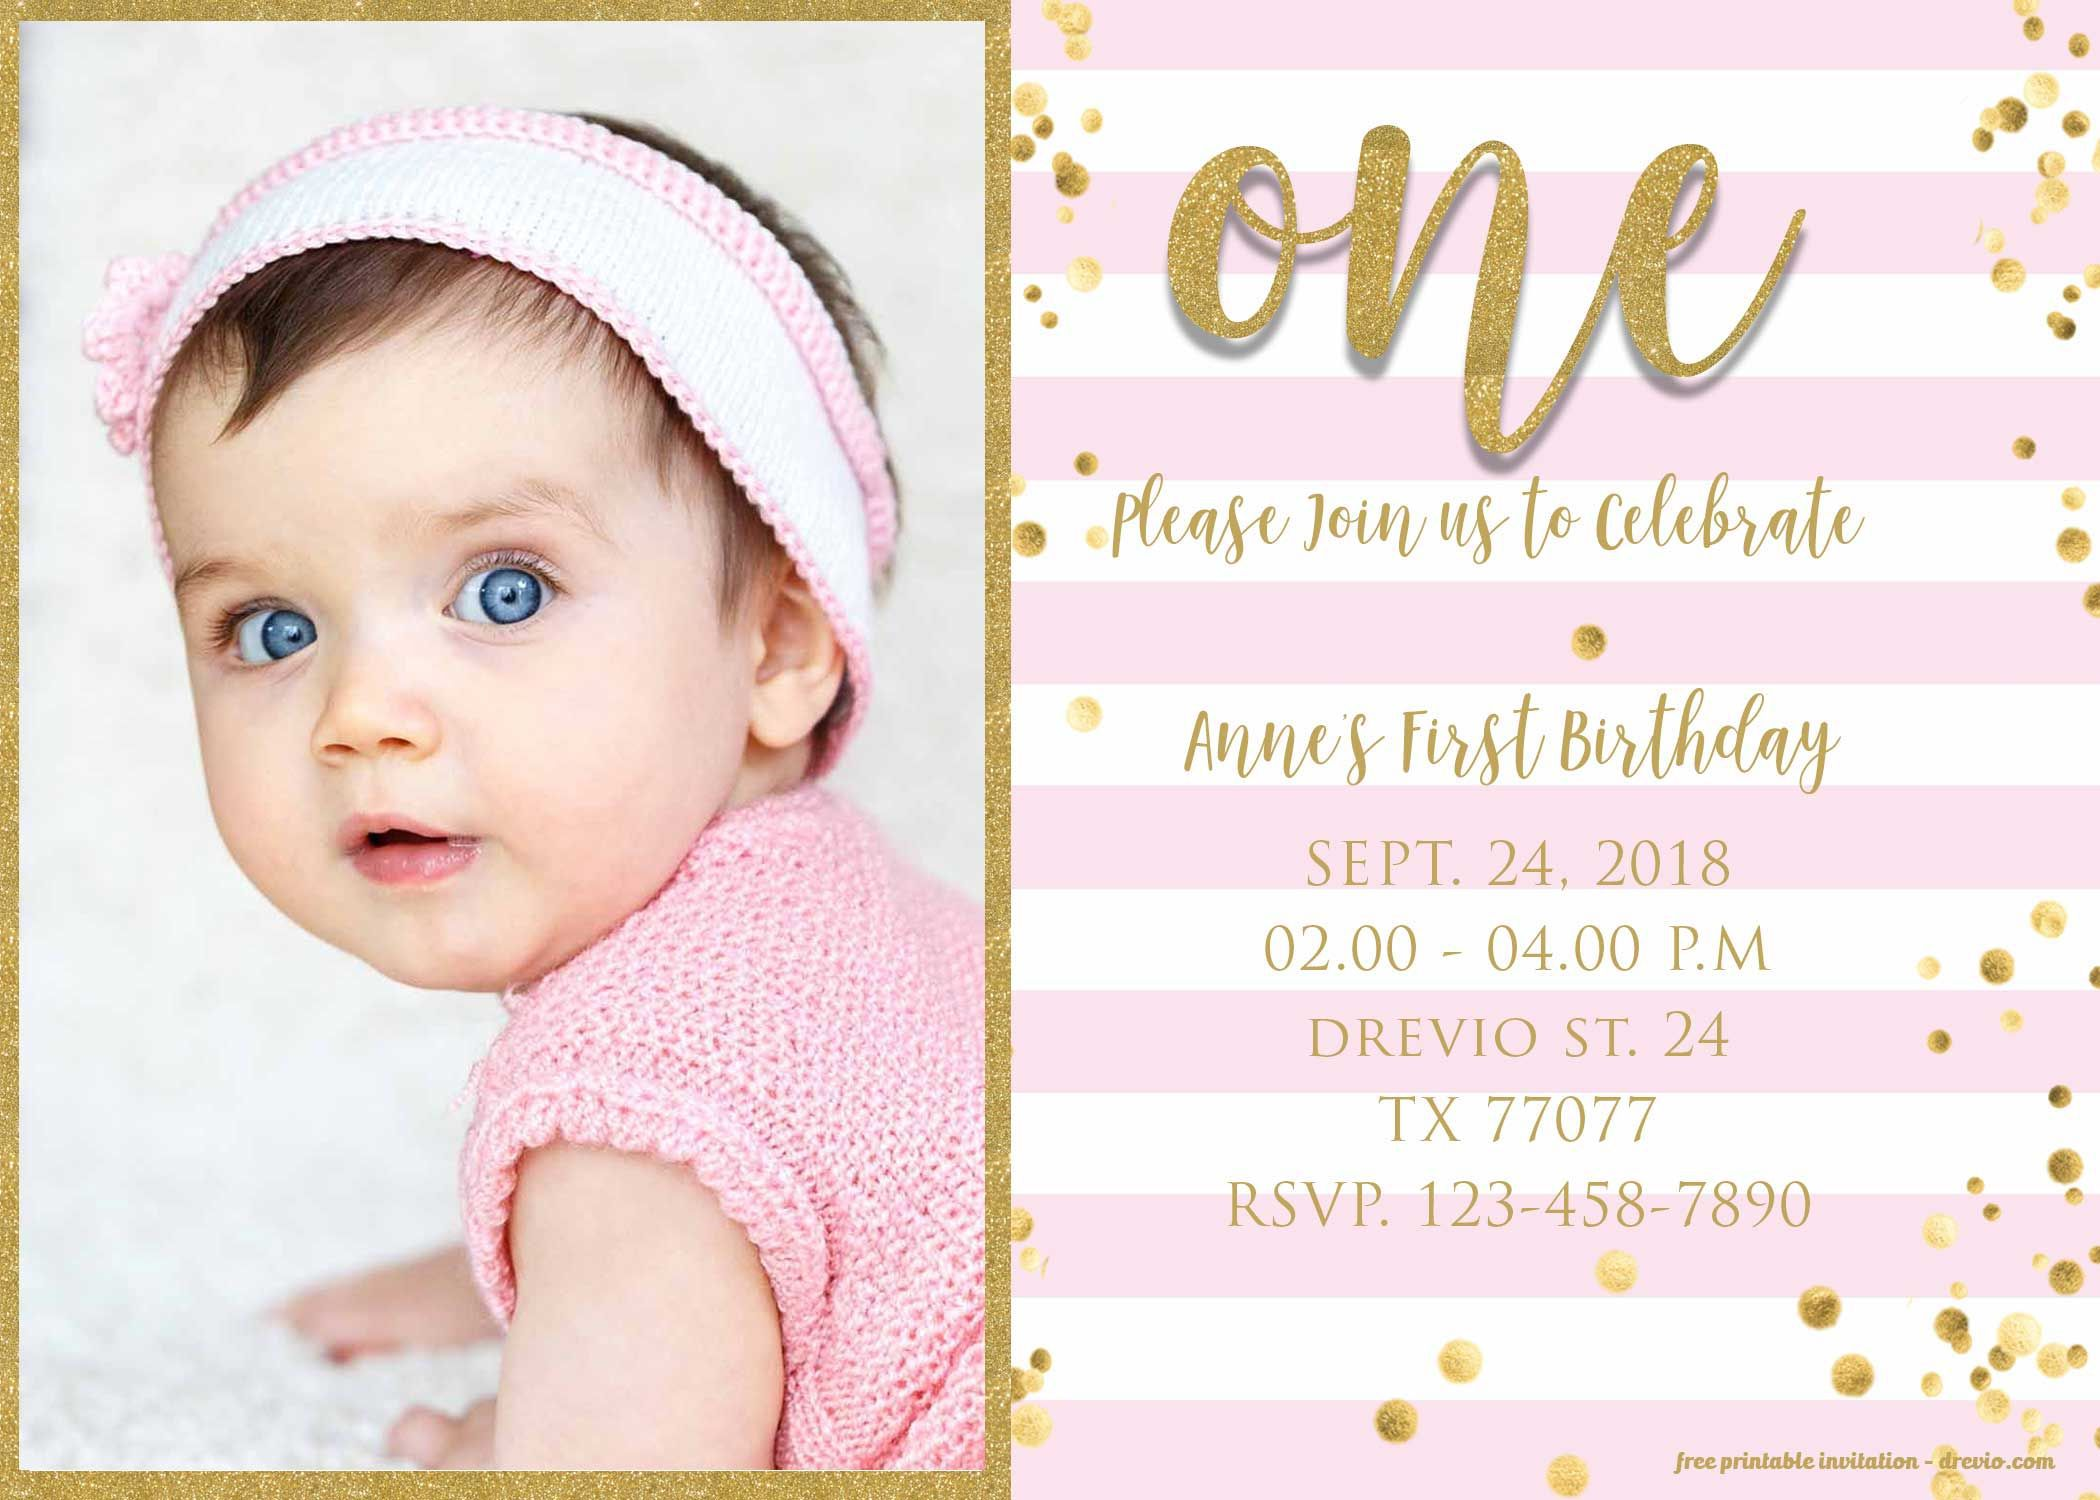 000 Magnificent Birthday Invitation Template Free Download Example  Editable Video Twin First Downloadable 18th PrintableFull